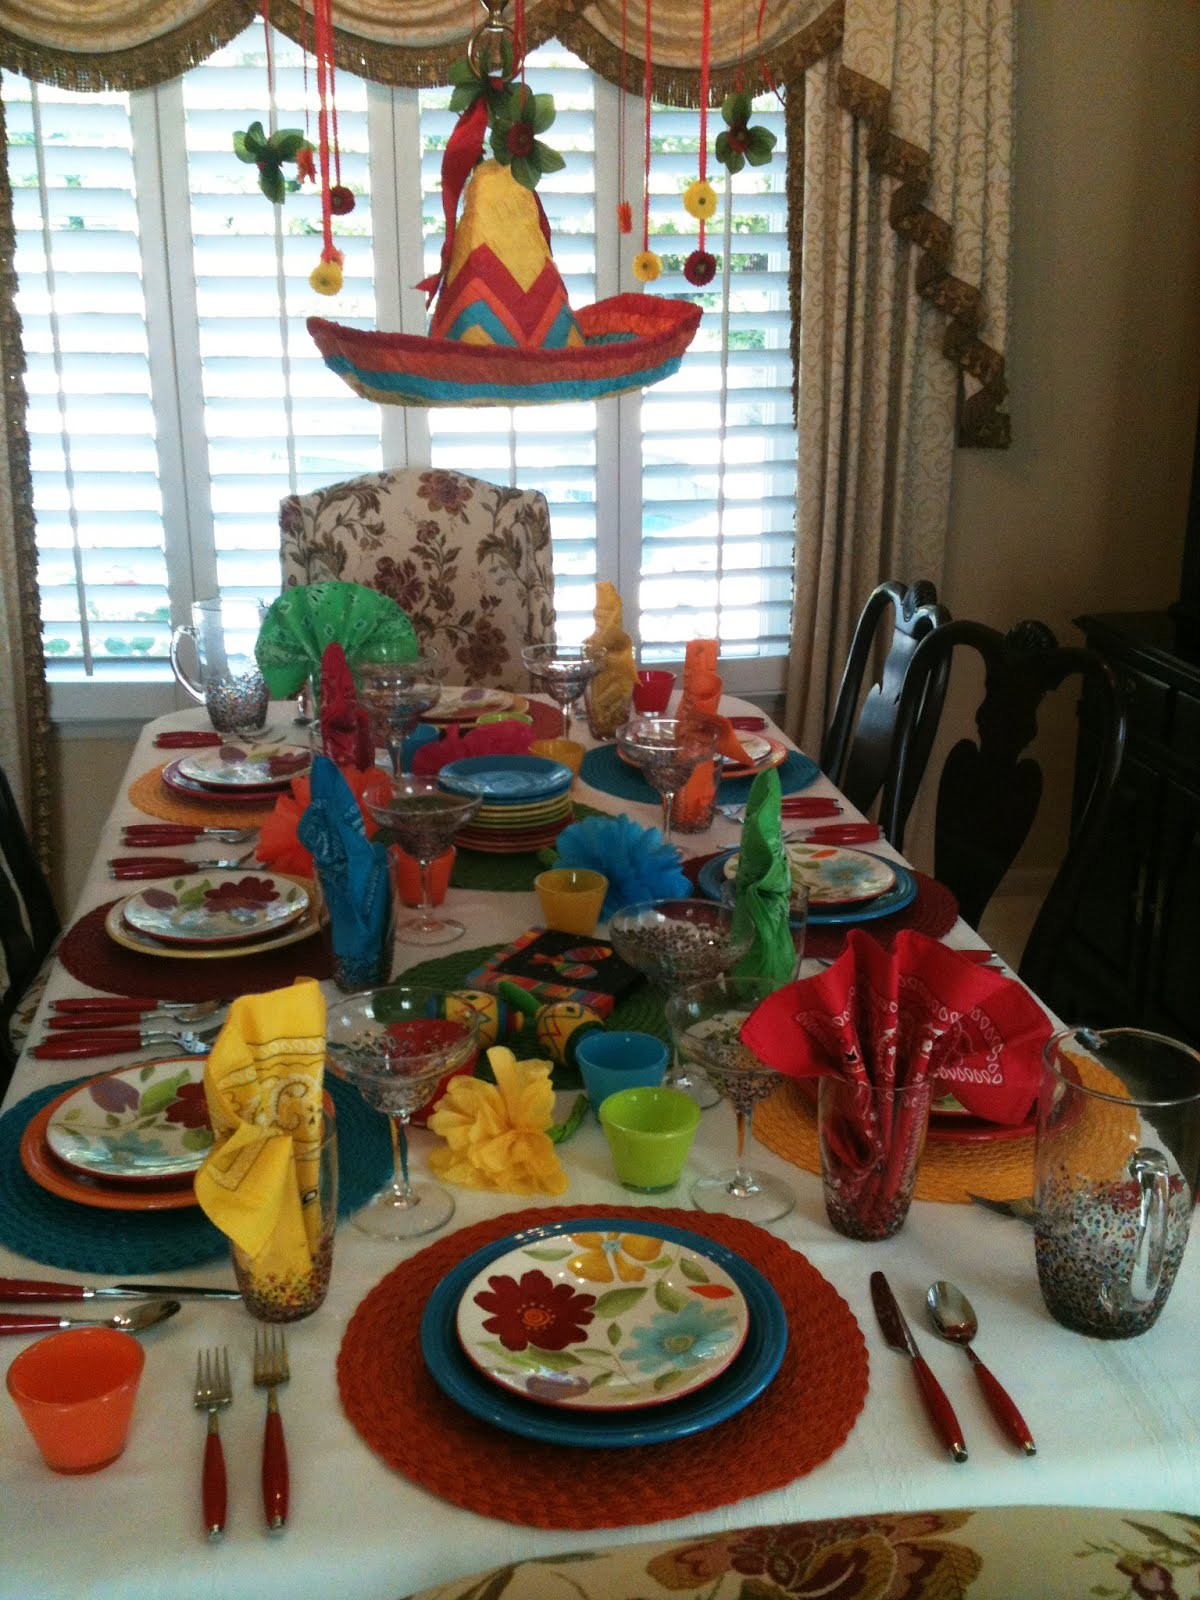 Make it delightful fiesta mexicana ole - Decoraciones de salones de casa ...